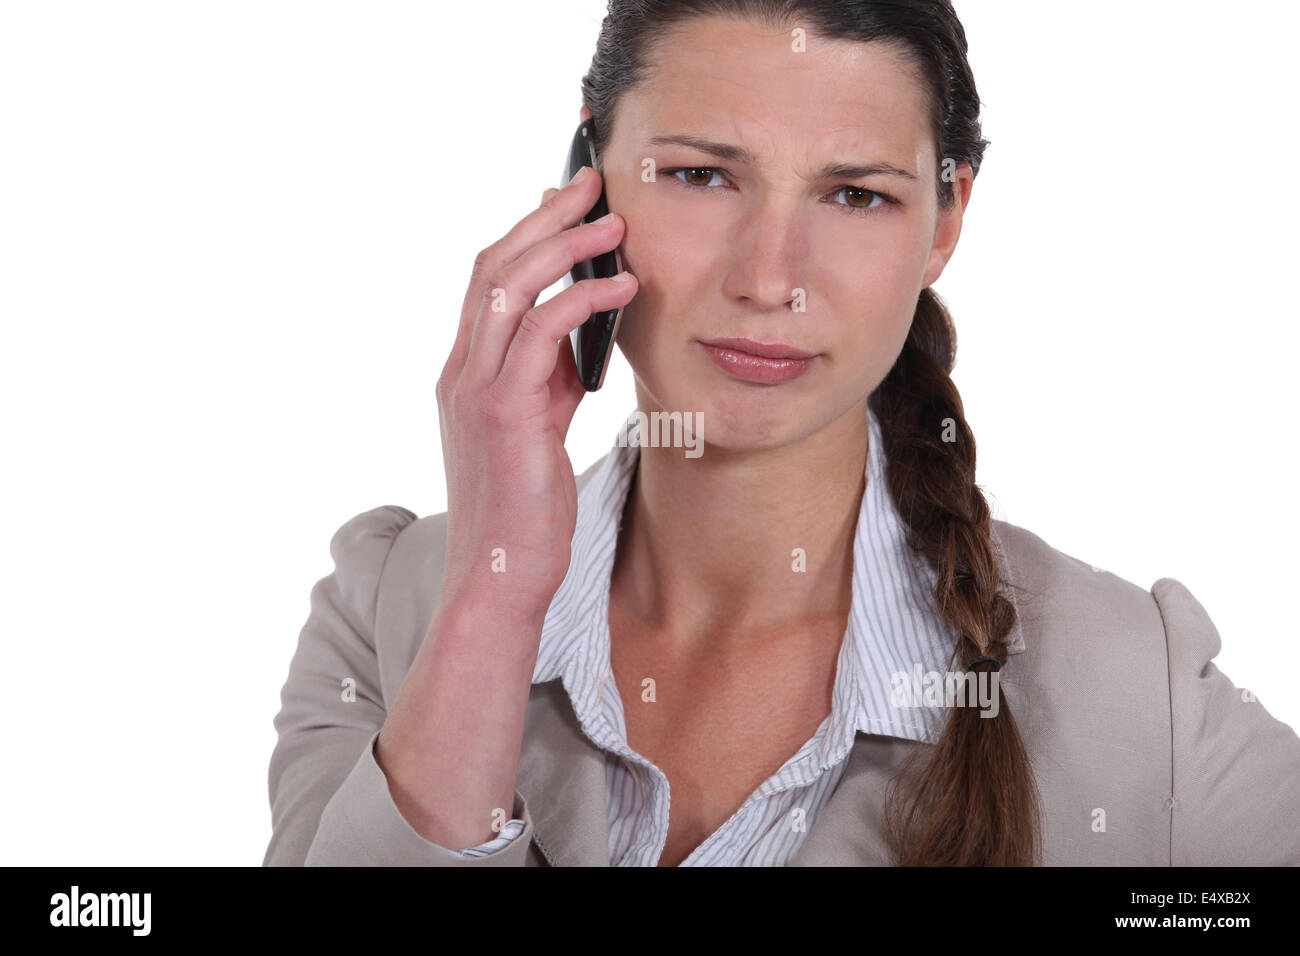 Women on the phone - Stock Image